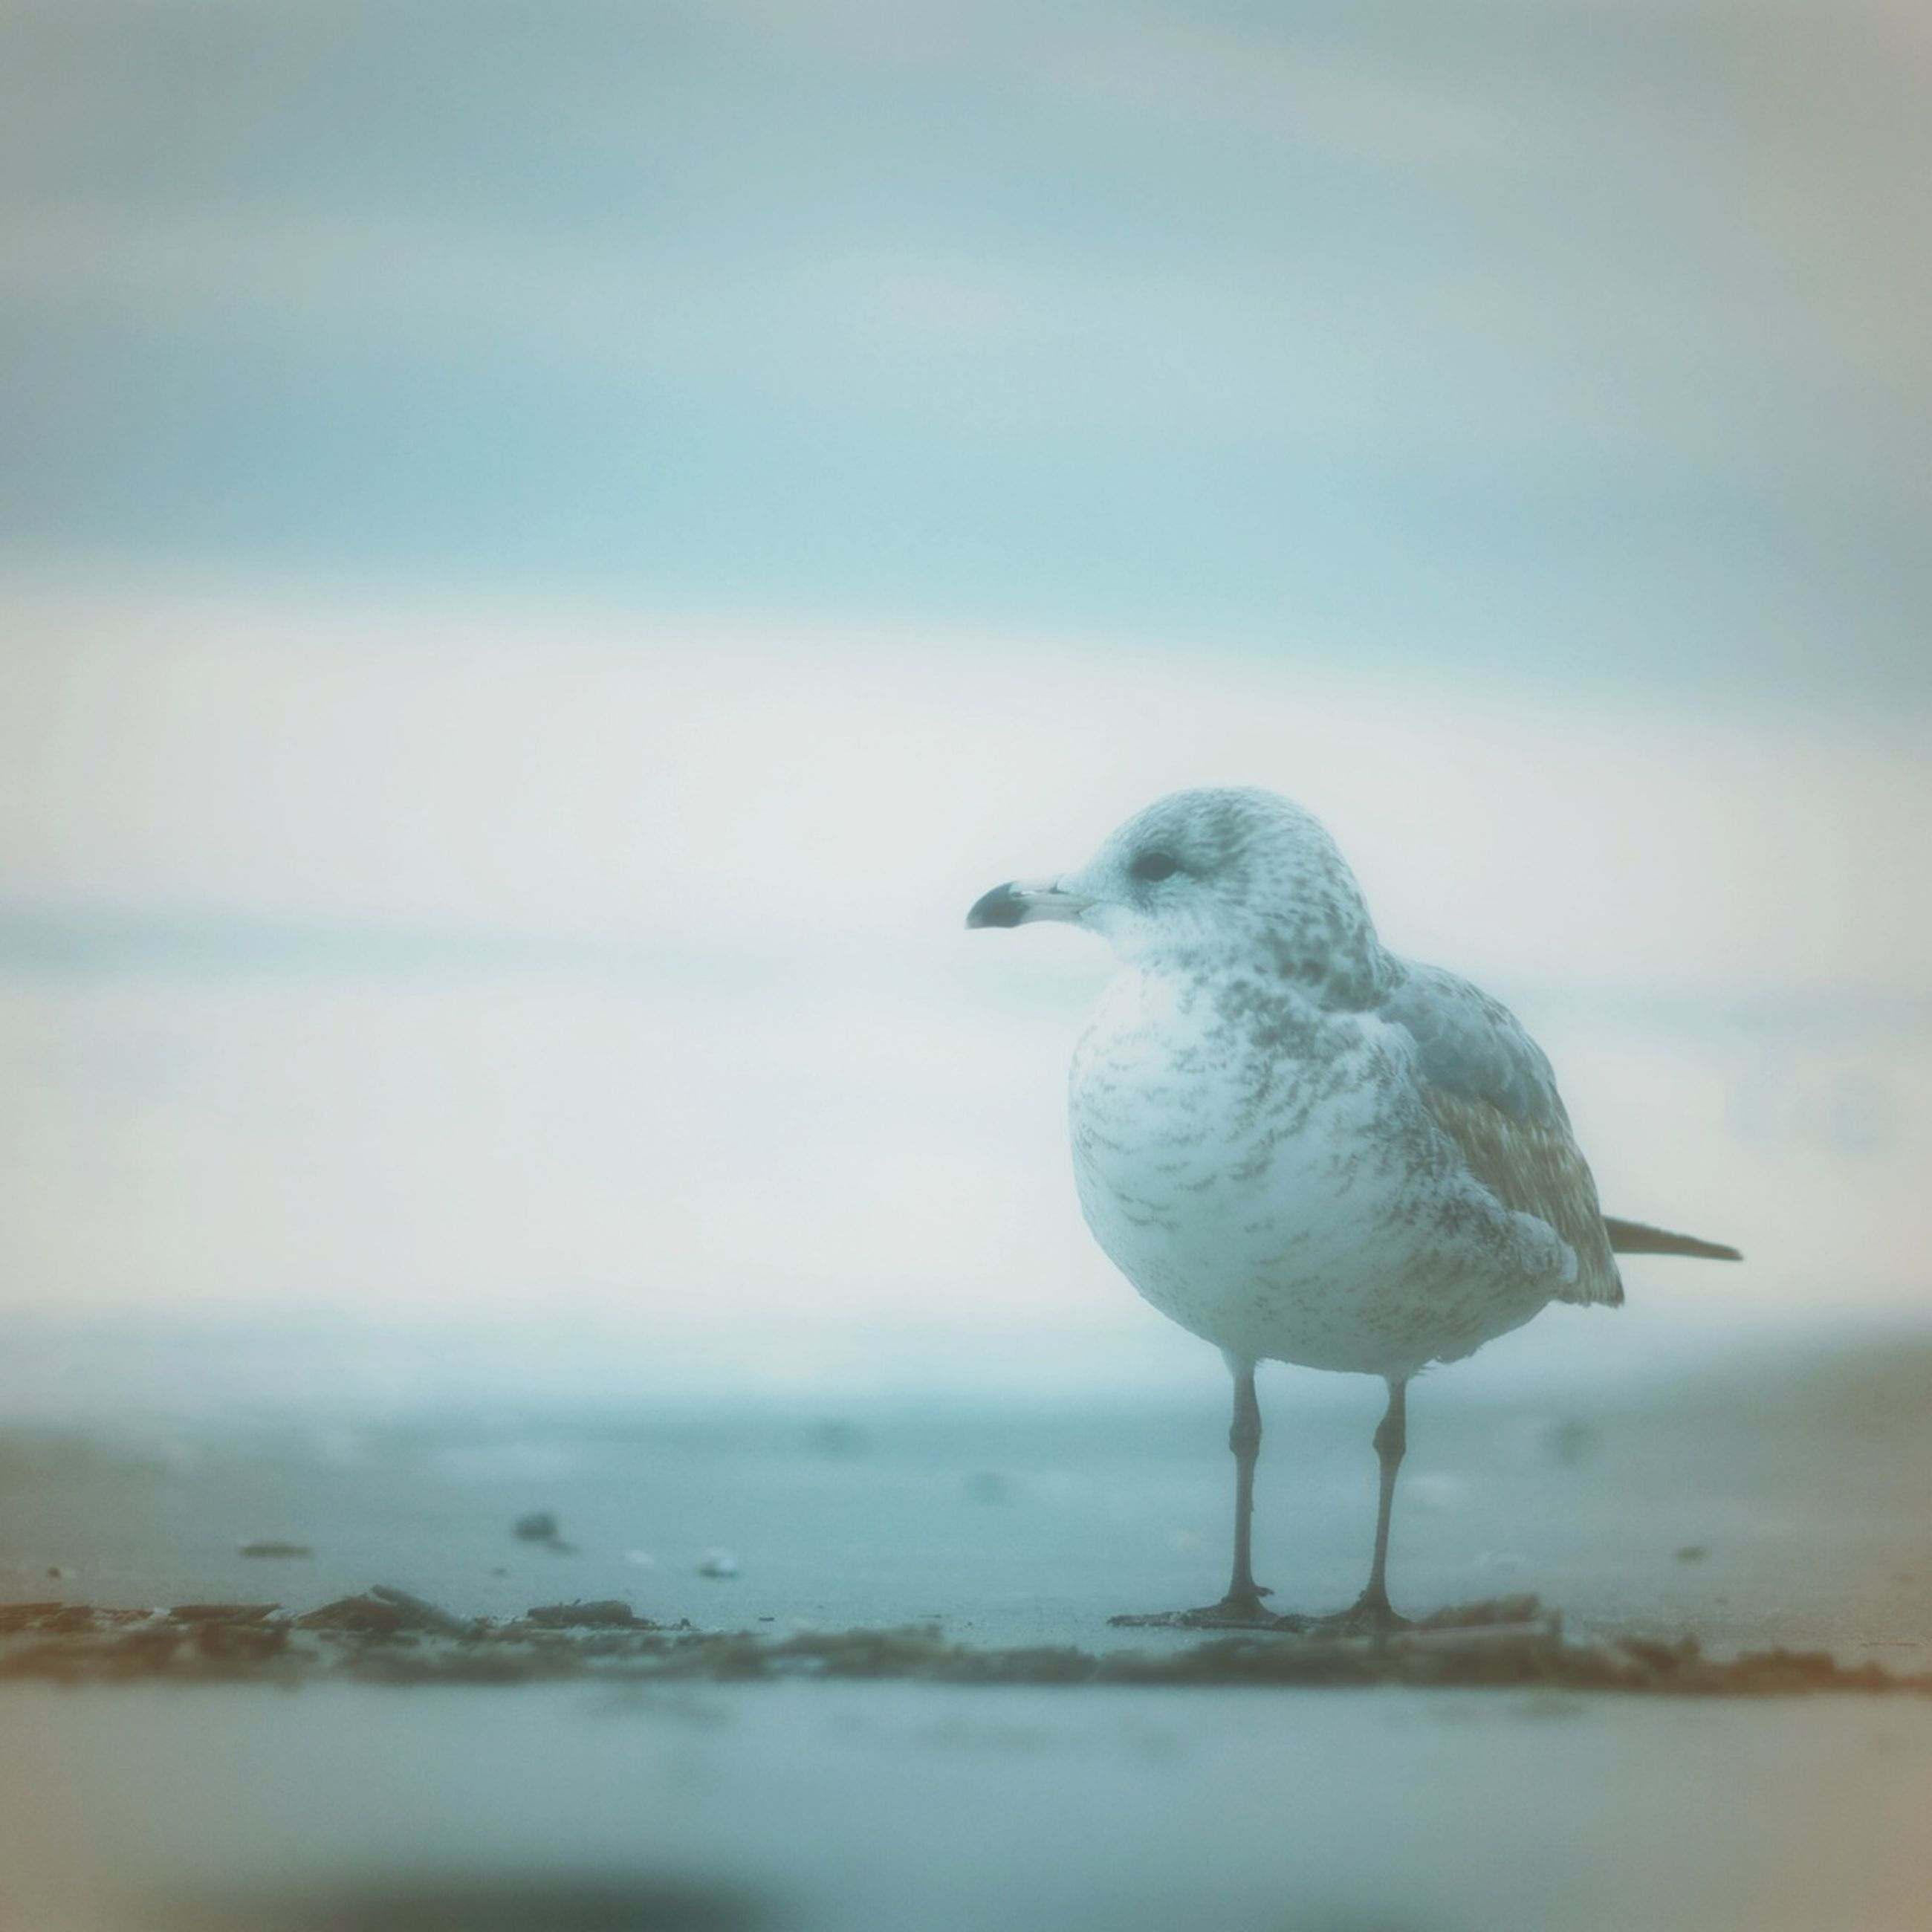 animal themes, one animal, bird, water, animals in the wild, wildlife, sea, nature, seagull, focus on foreground, waterfront, full length, day, perching, close-up, outdoors, side view, lake, sky, no people